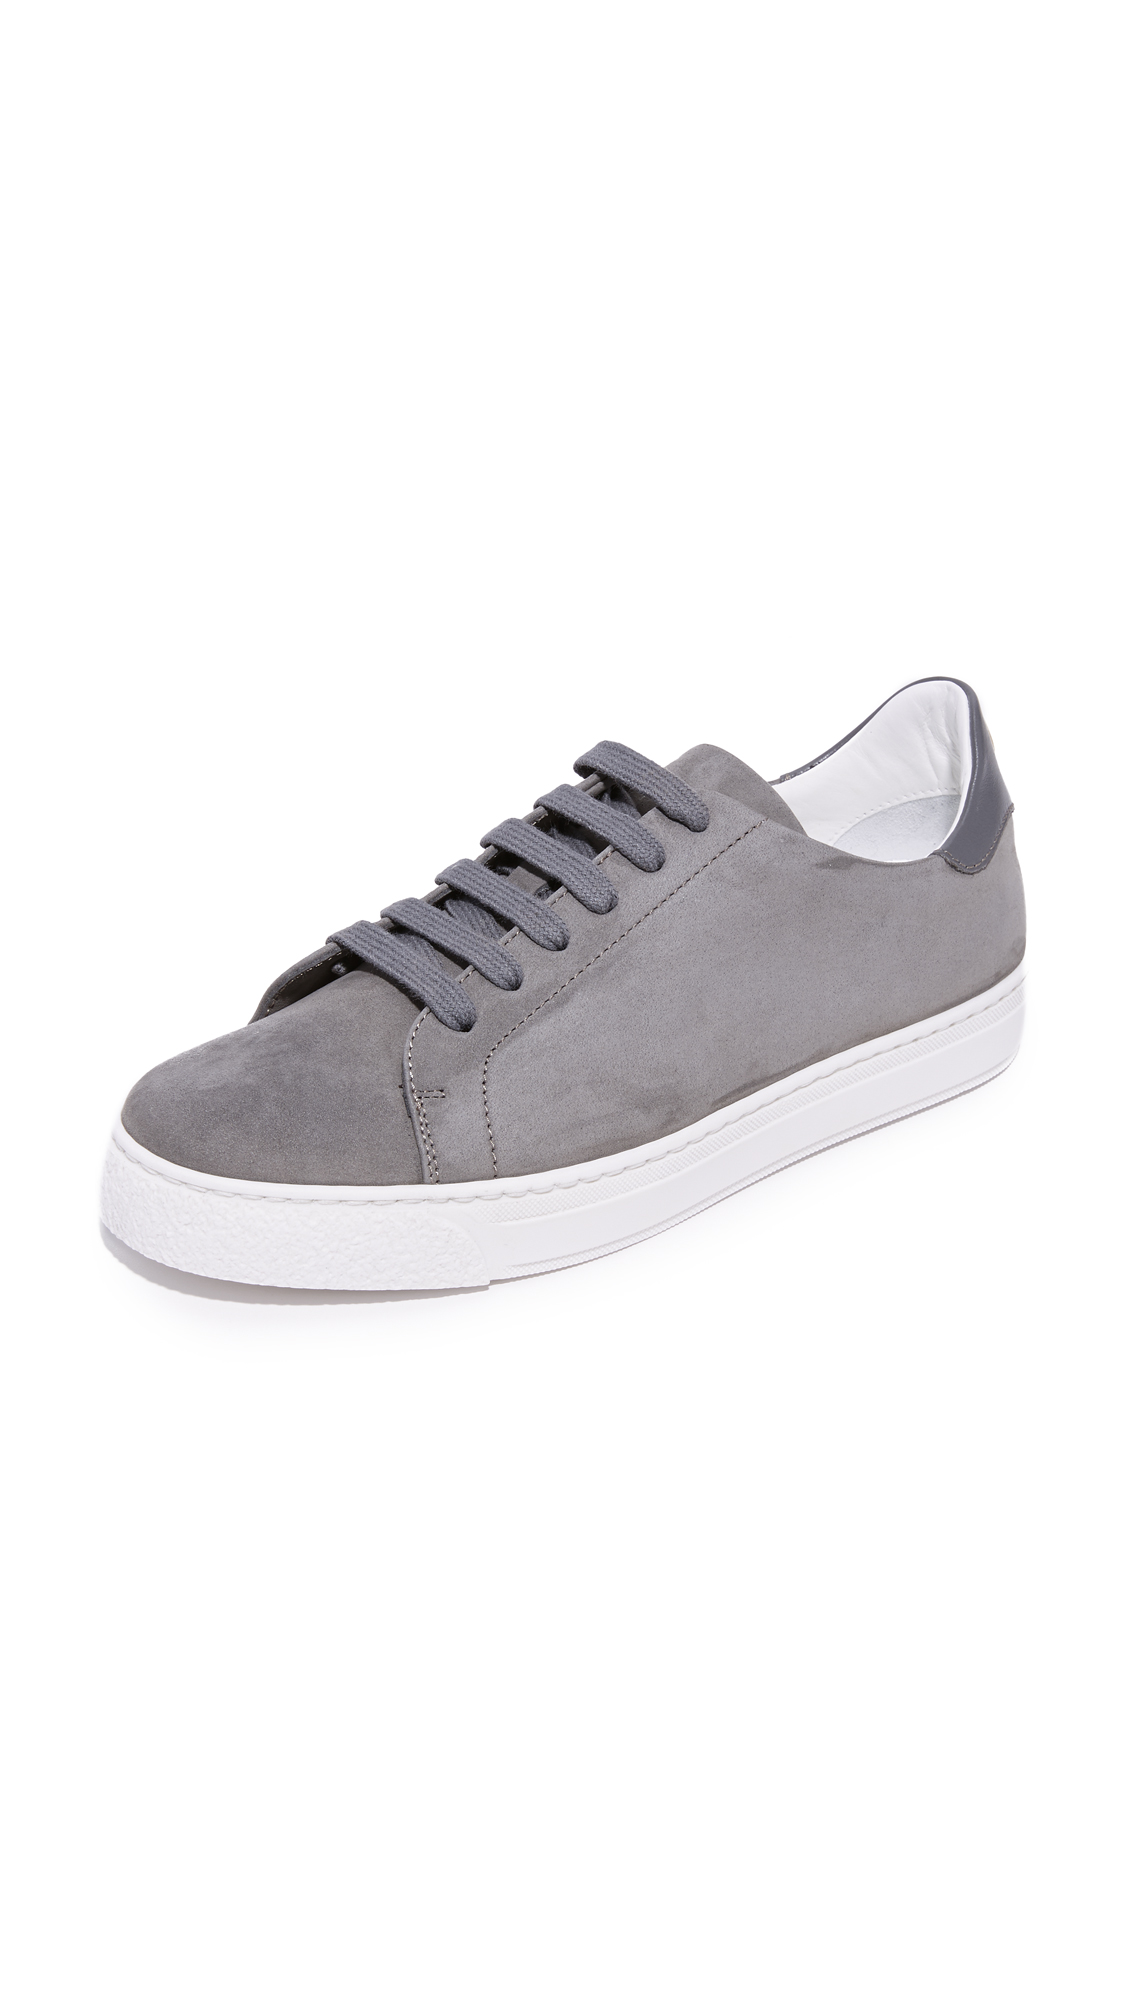 Anya Hindmarch Tennis Shoe Wink Sneakers - Charcoal at Shopbop